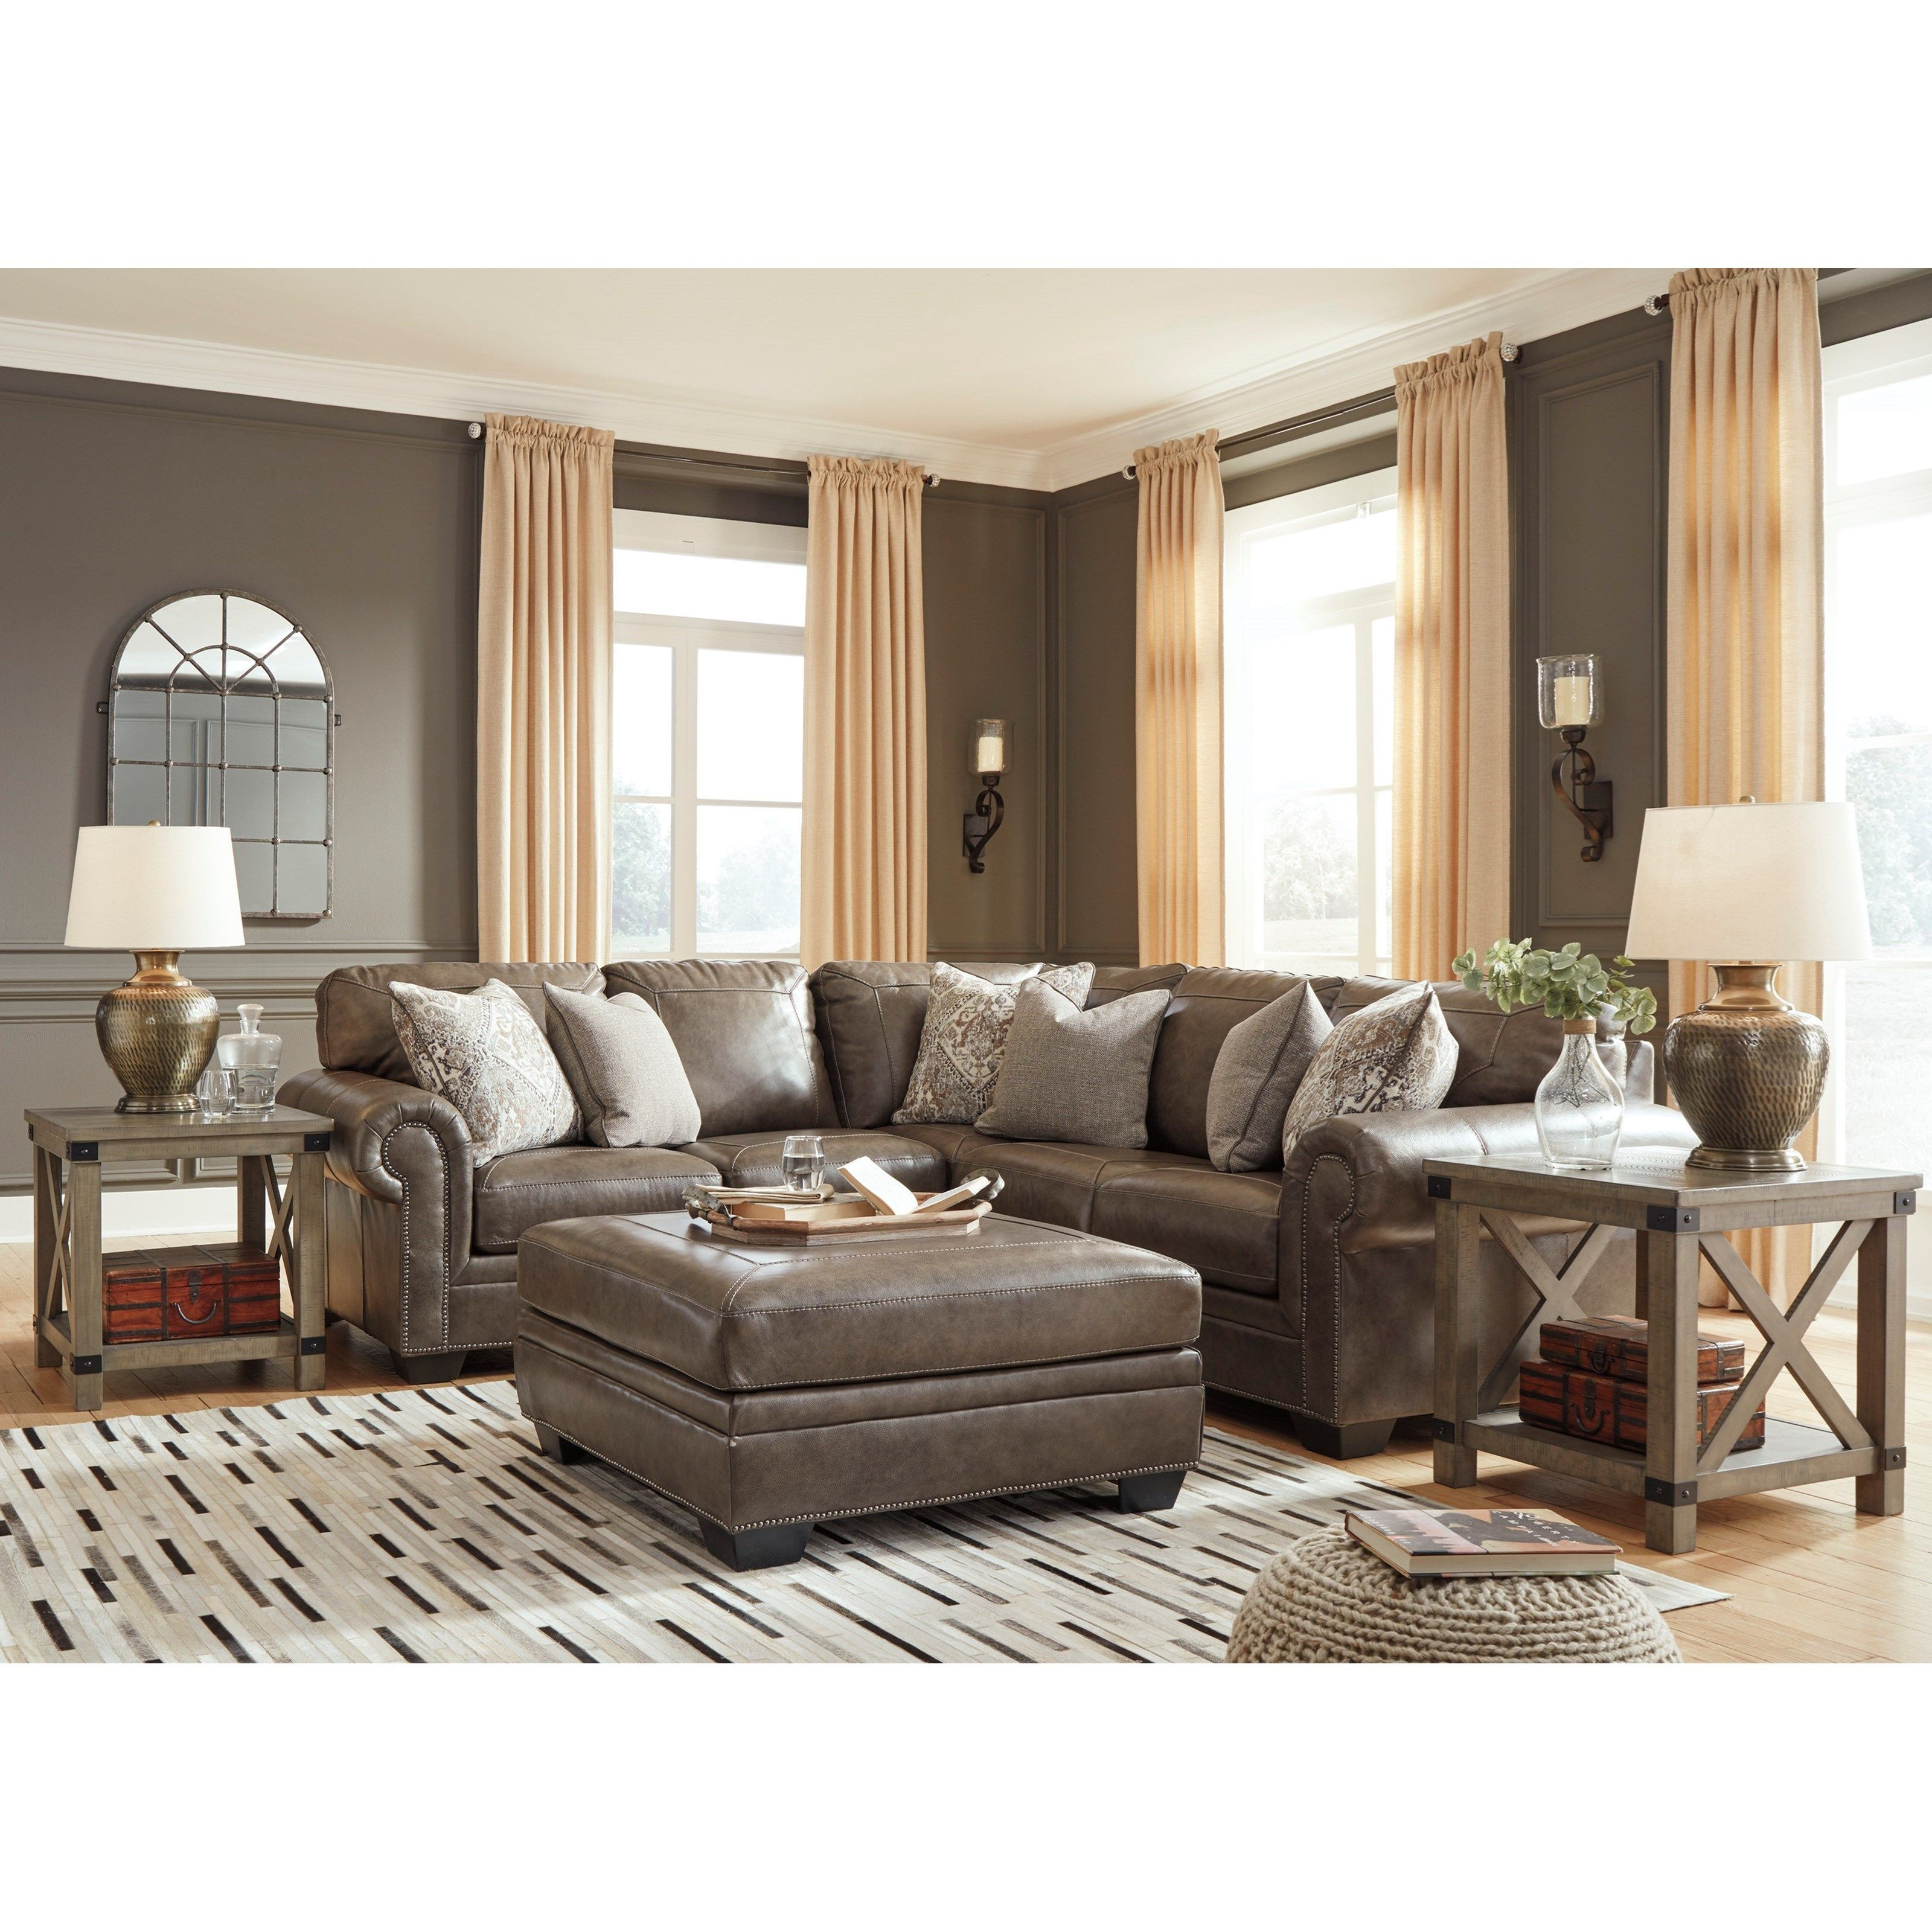 Signature Design By Ashley Roleson Stationary Living Room Group